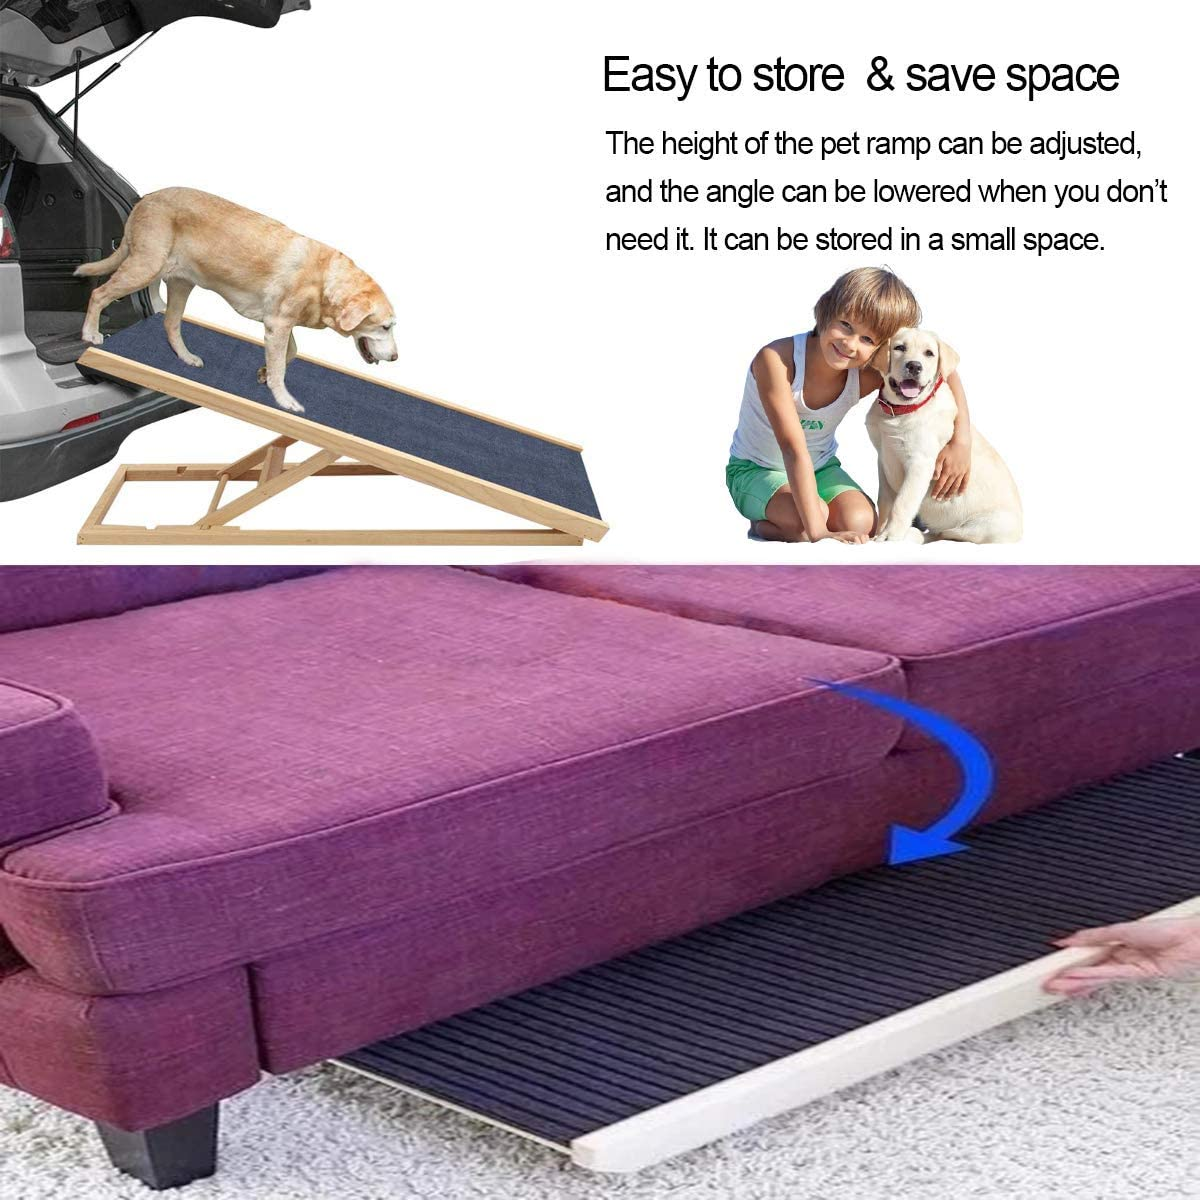 Bounabay Dog Ramp Large Dog Pets Ramp for Vehicle Height Adjustable Dog Ramp Support up to 100 Lbs with Non-Slip Carpet Wooden Pets Ladder 2 Levels, 27.56//60cm Length